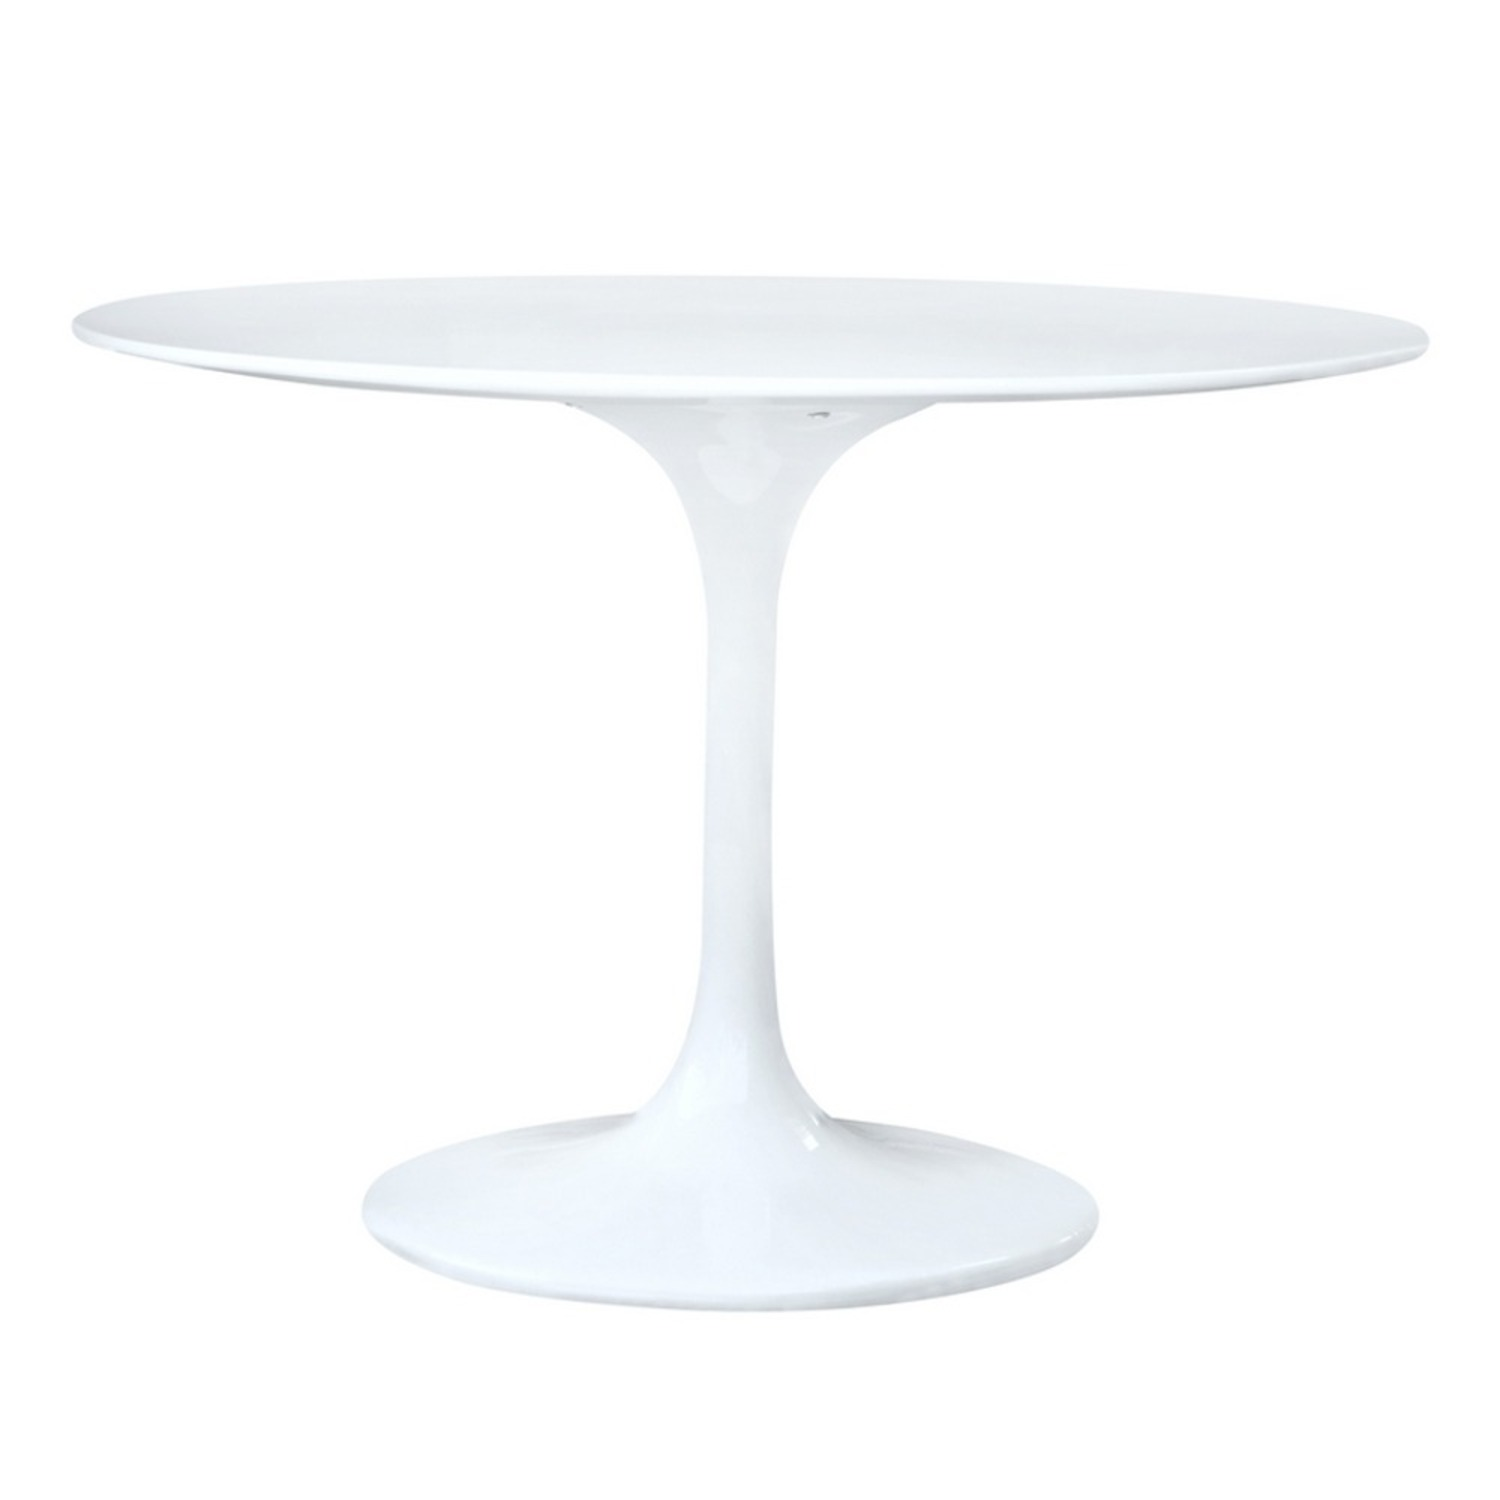 36-Inch Dining Table Molded In White Fiberglass - image-2